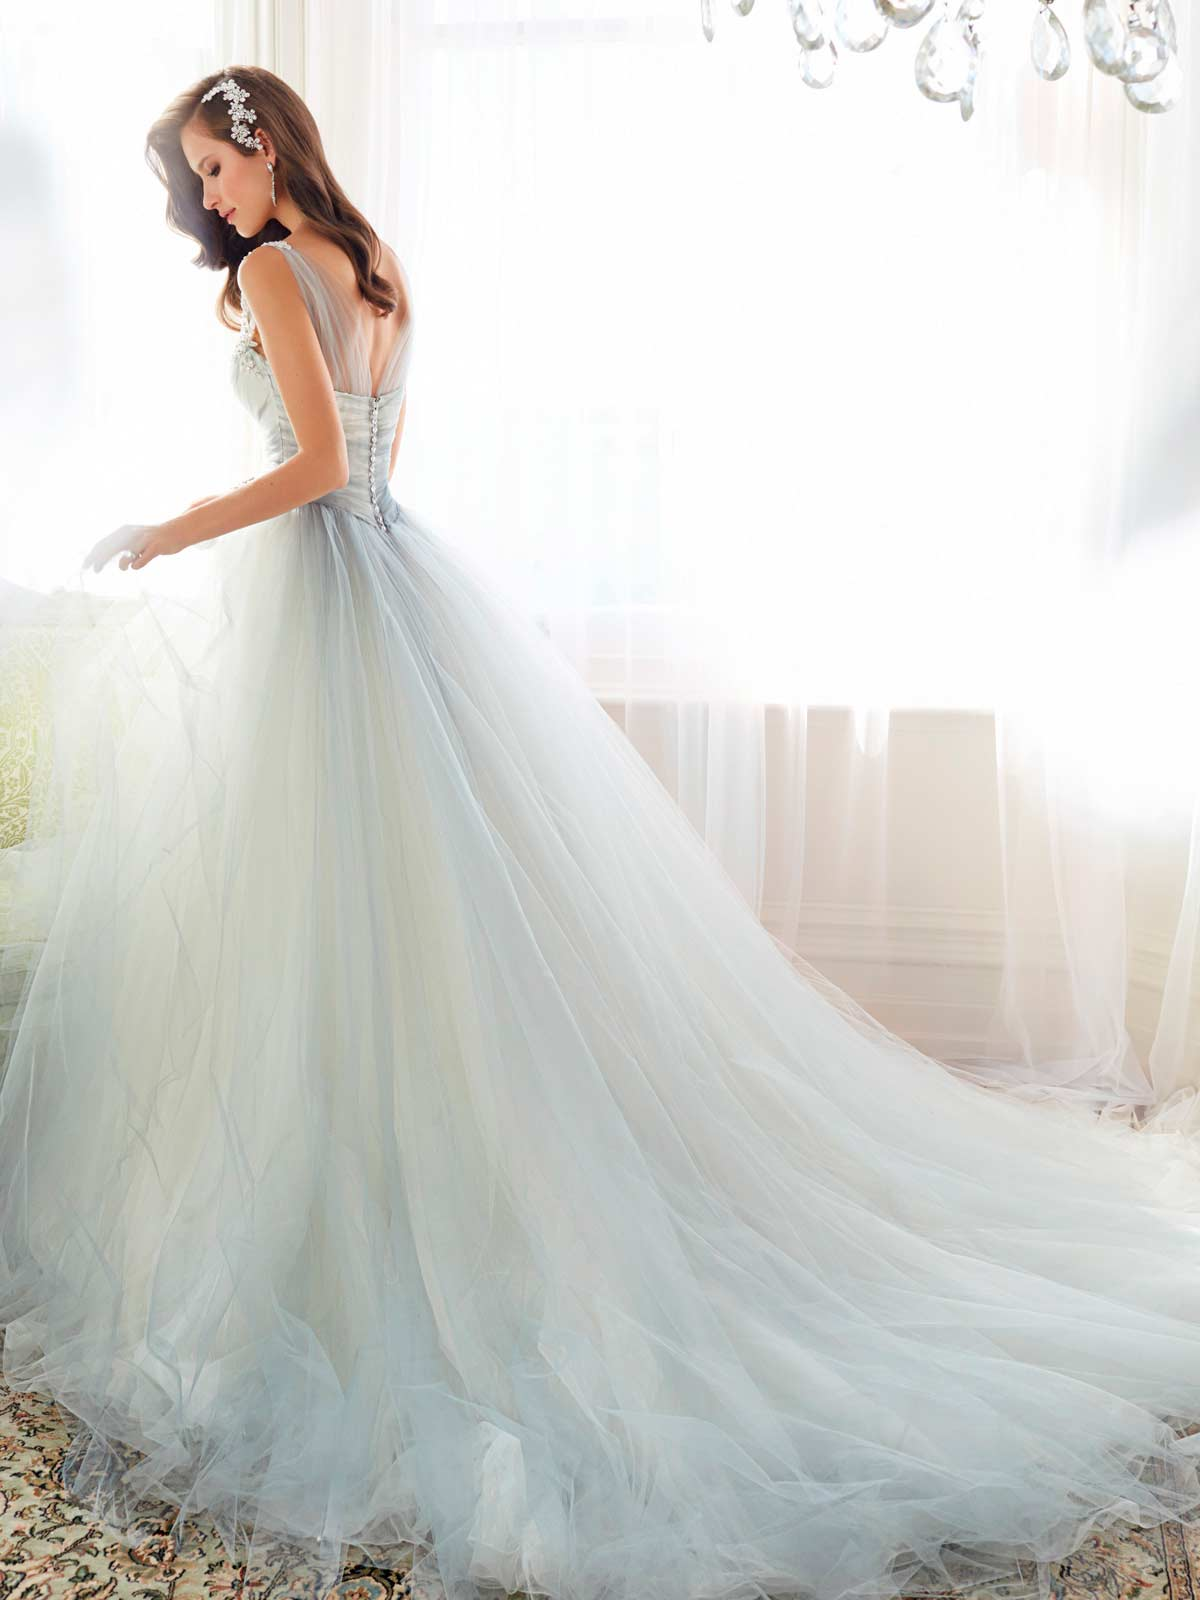 Bst v y c i u i c c i n tuy t p t sophia tolli marry for Designer brand wedding dresses